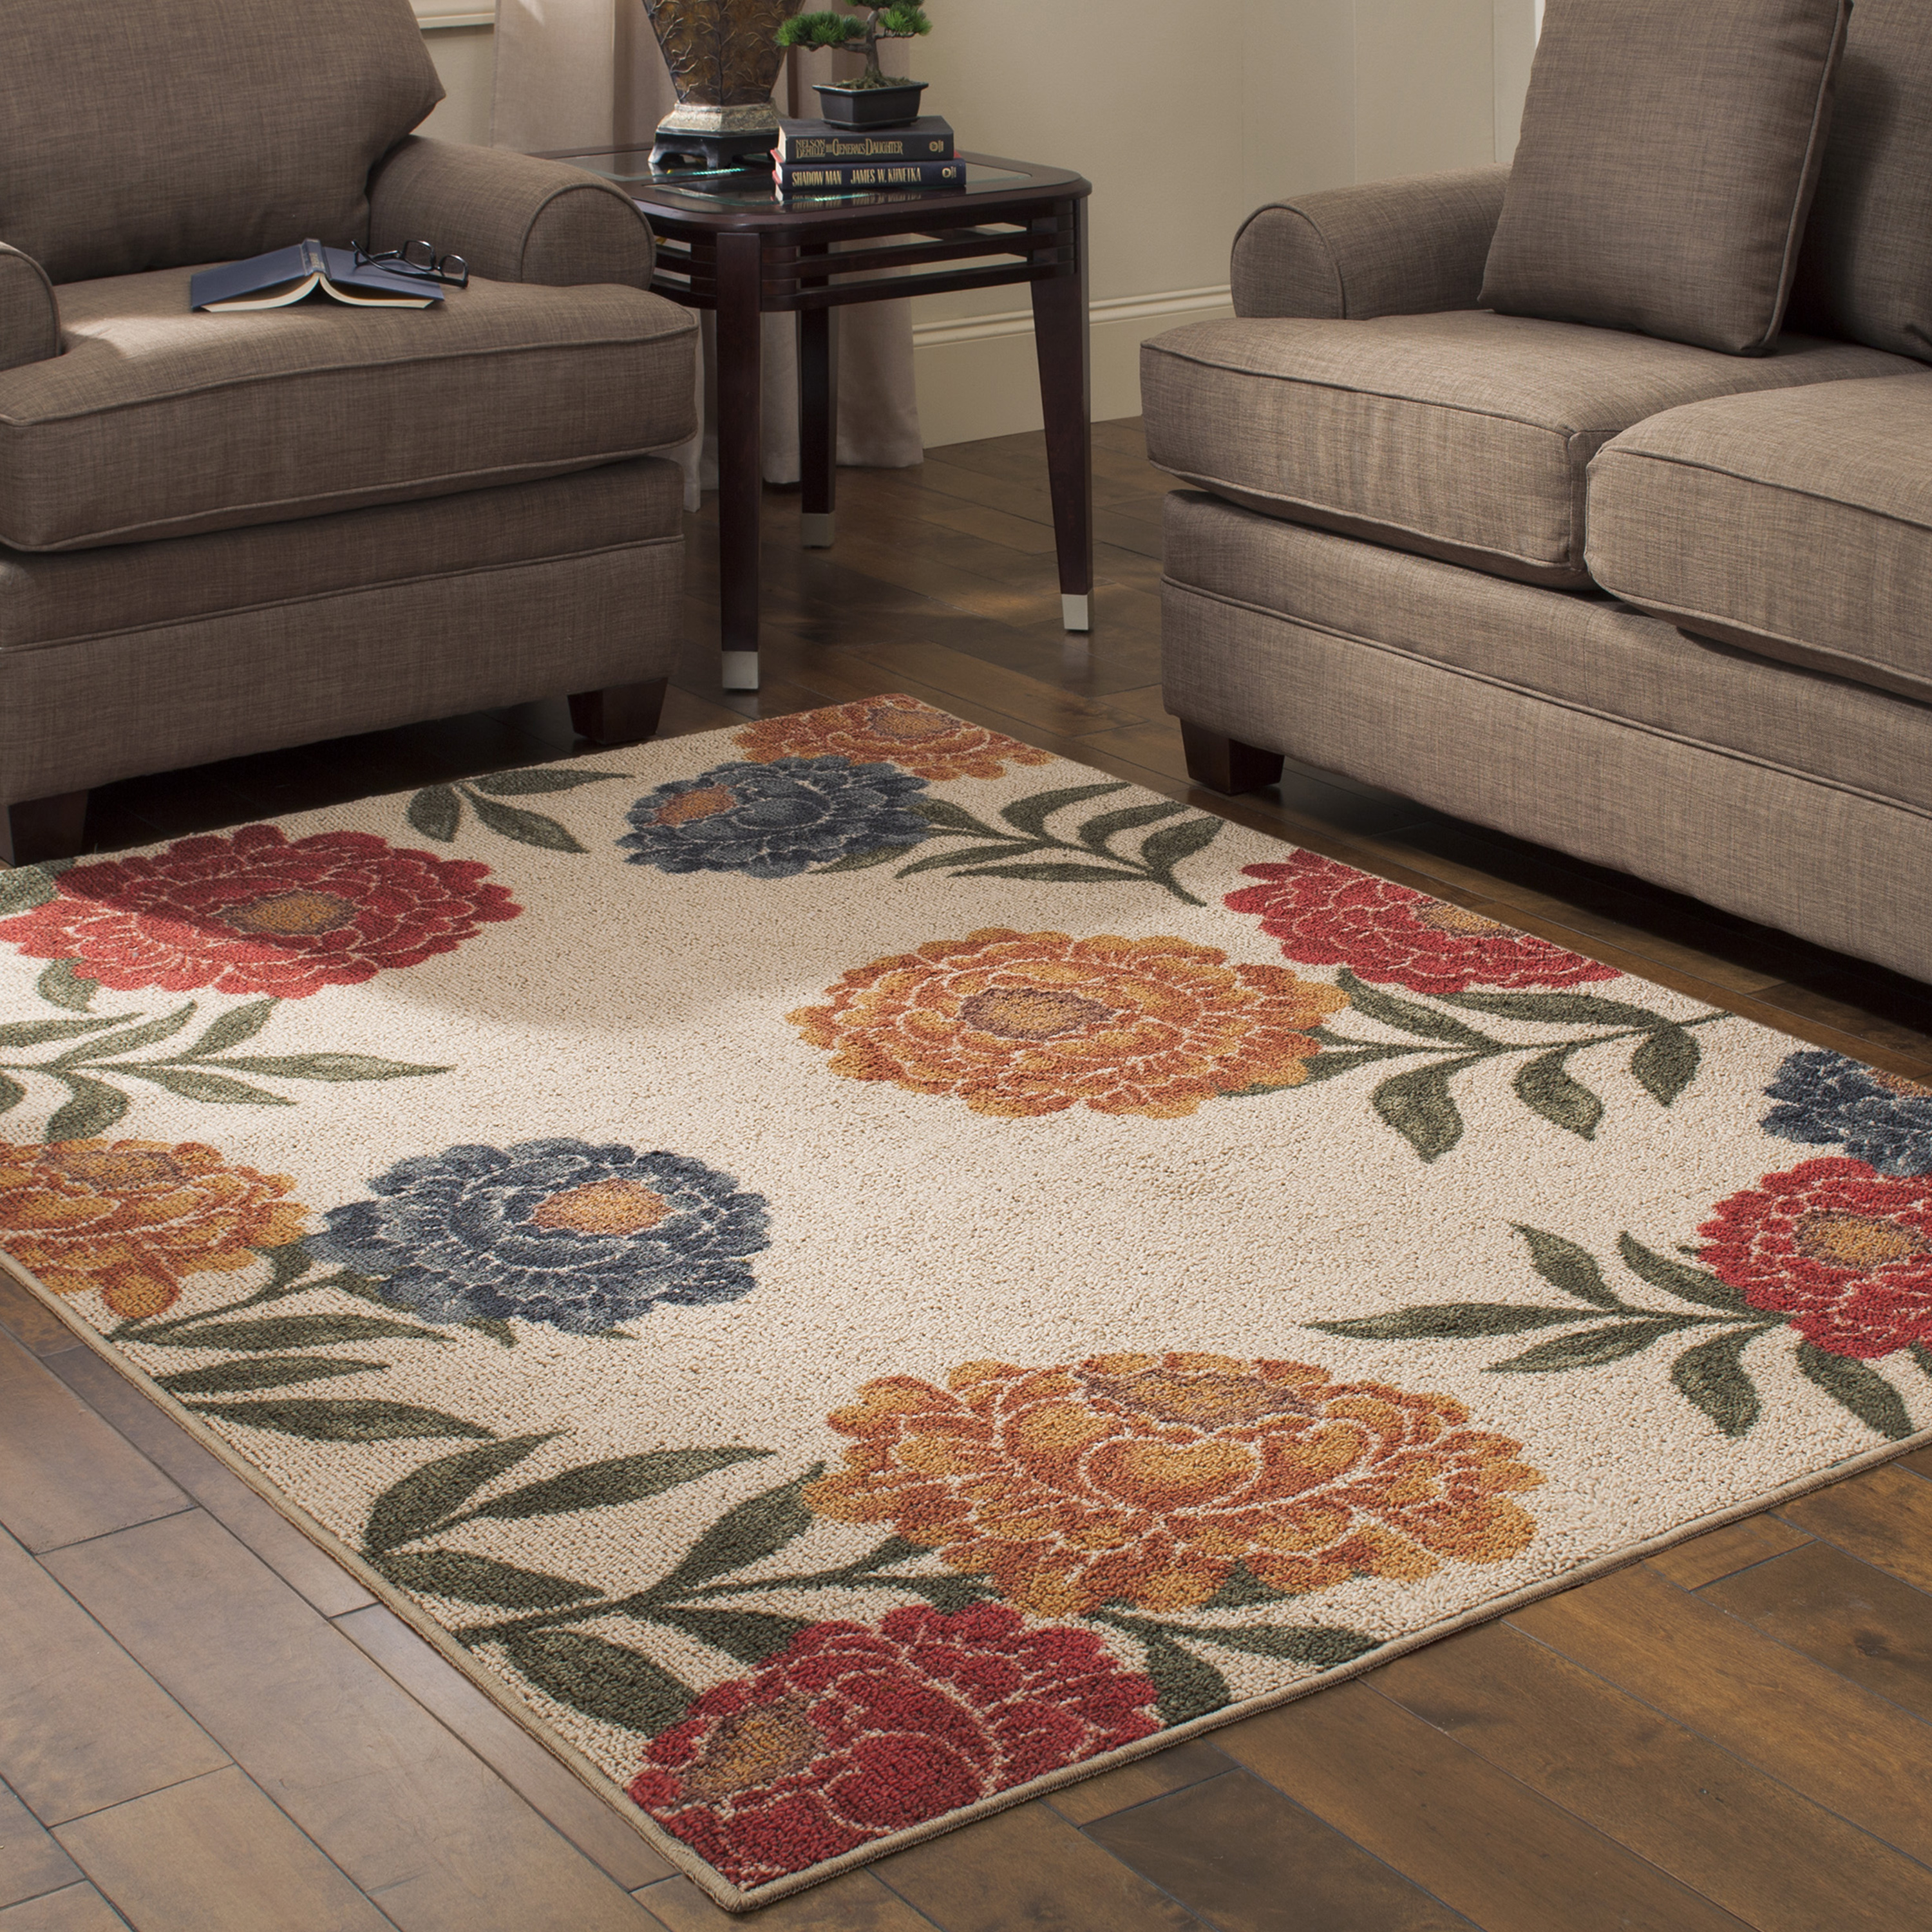 Better Homes and Gardens Garden Peonies Berber Print Area Rugs or Runner